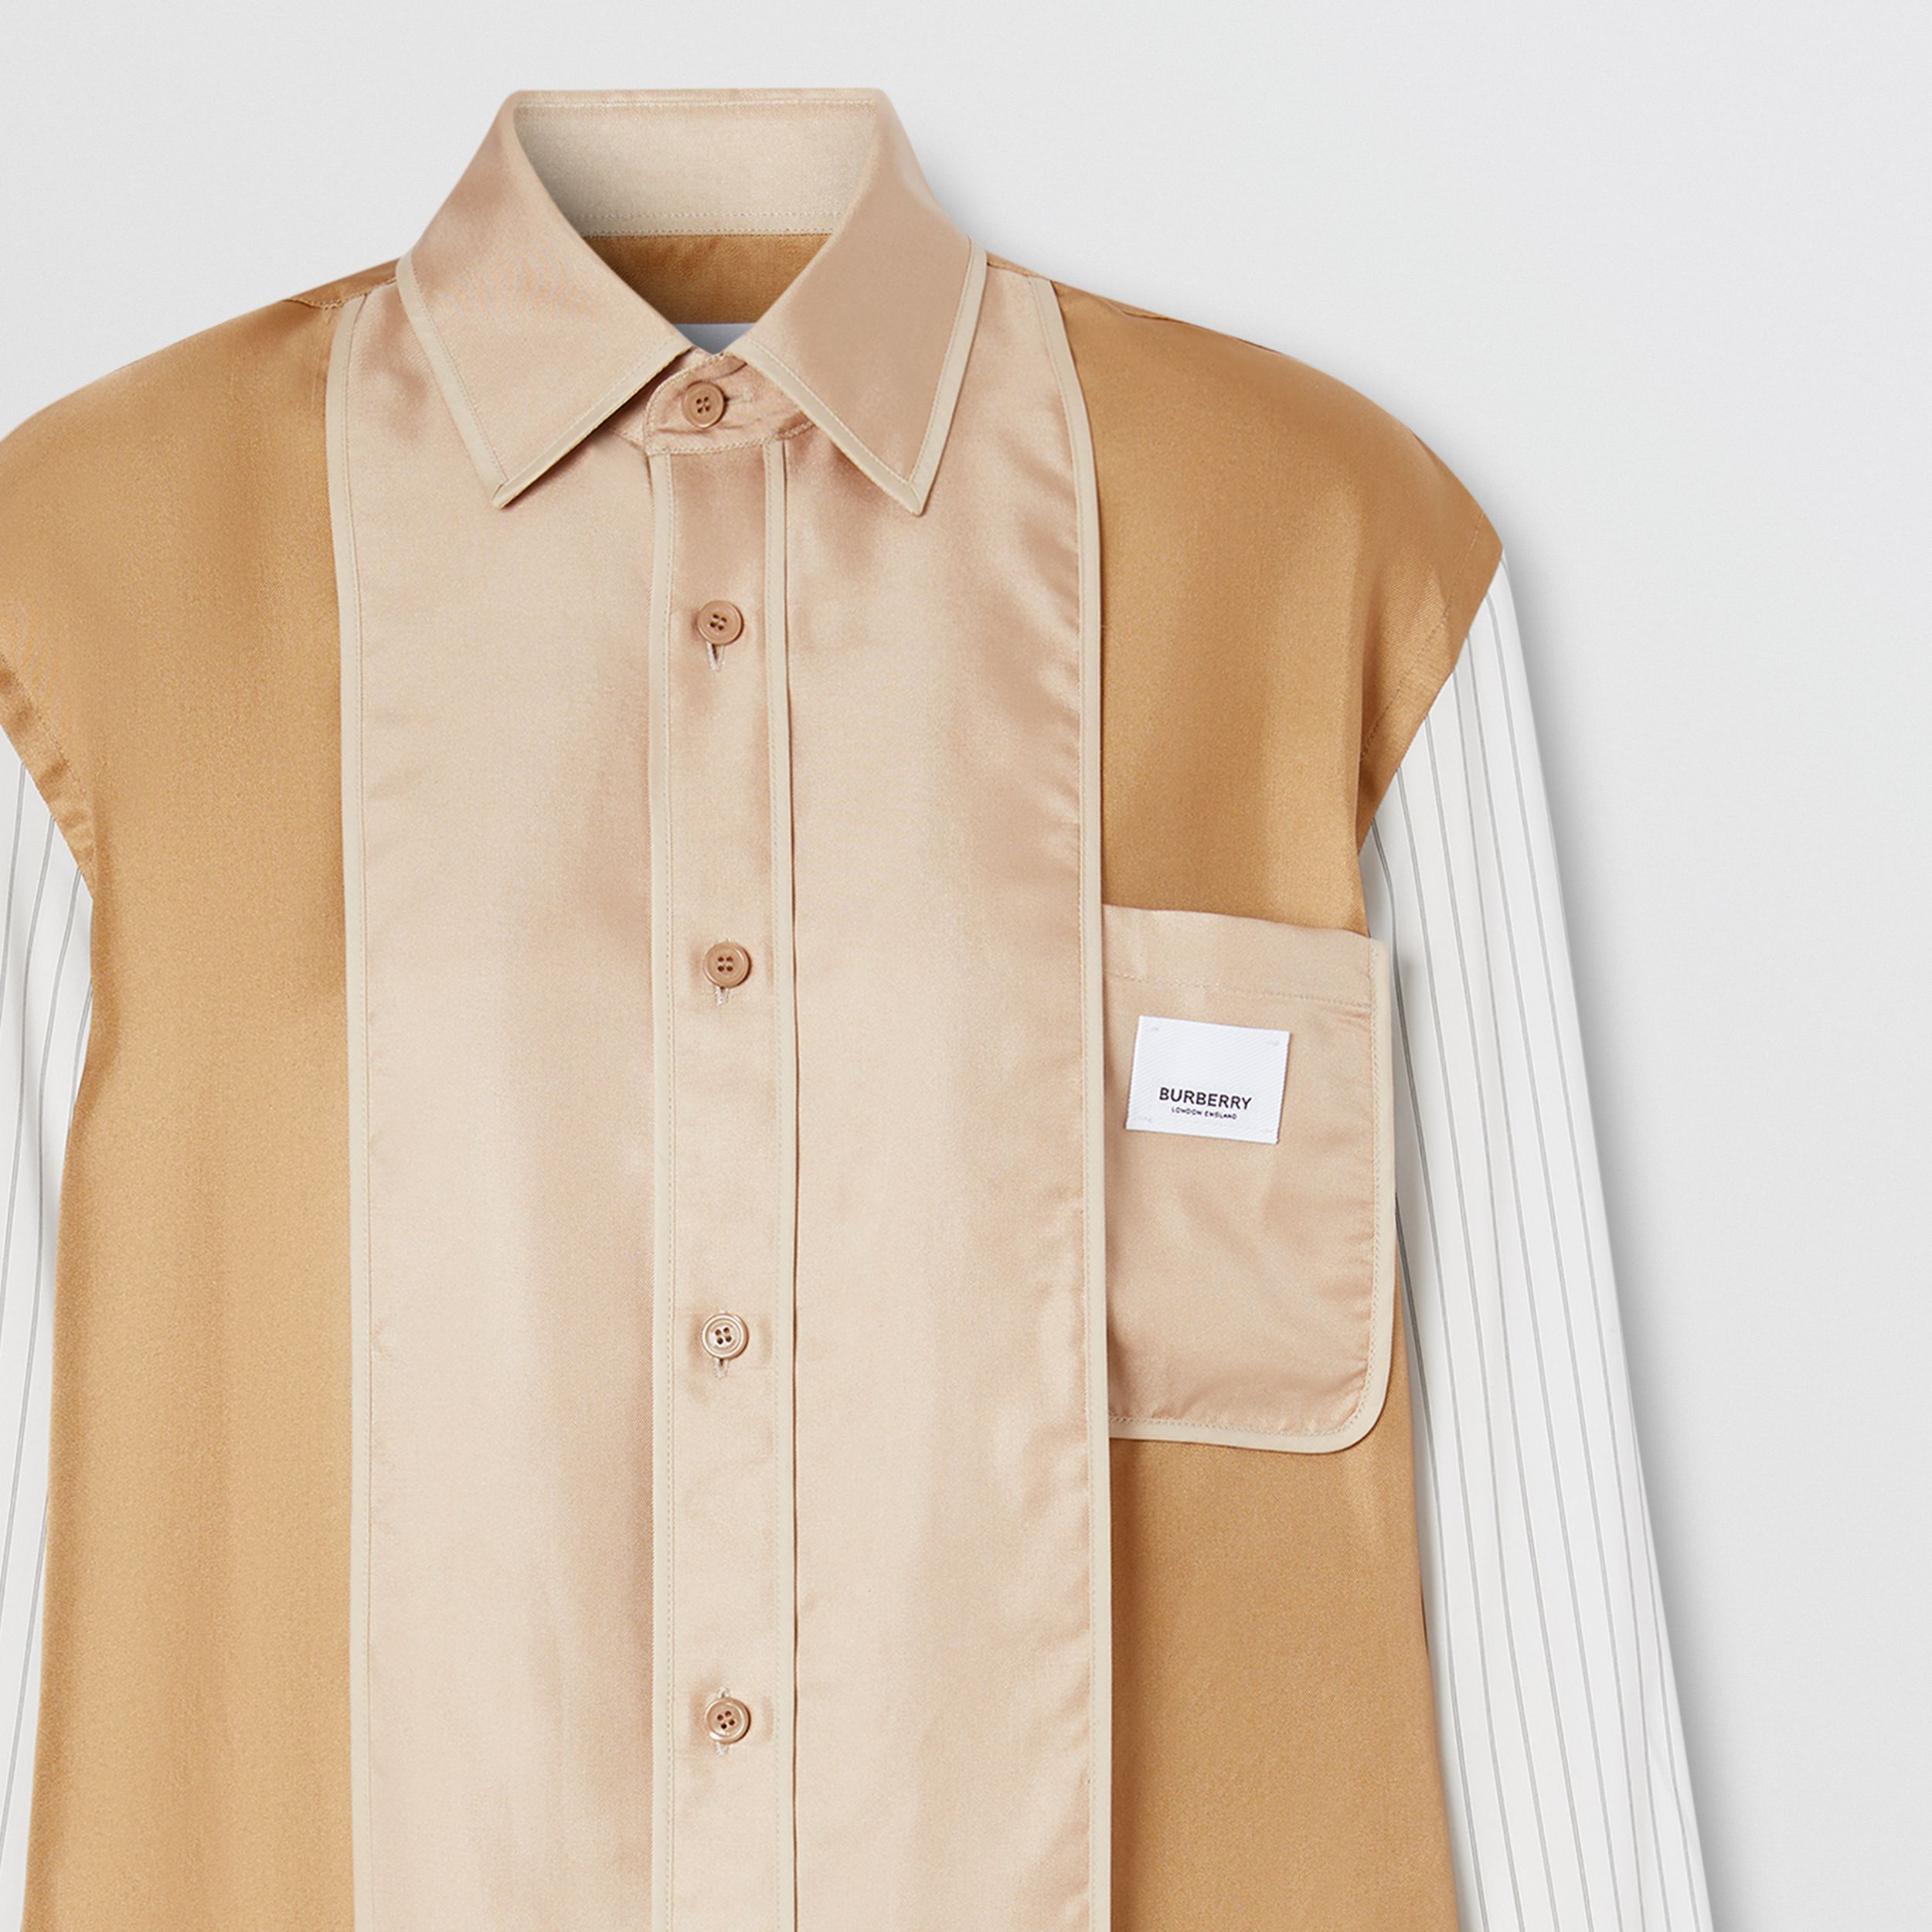 Logo Appliqué Pinstriped Sleeve Silk Shirt in Camel - Women | Burberry United States - 3